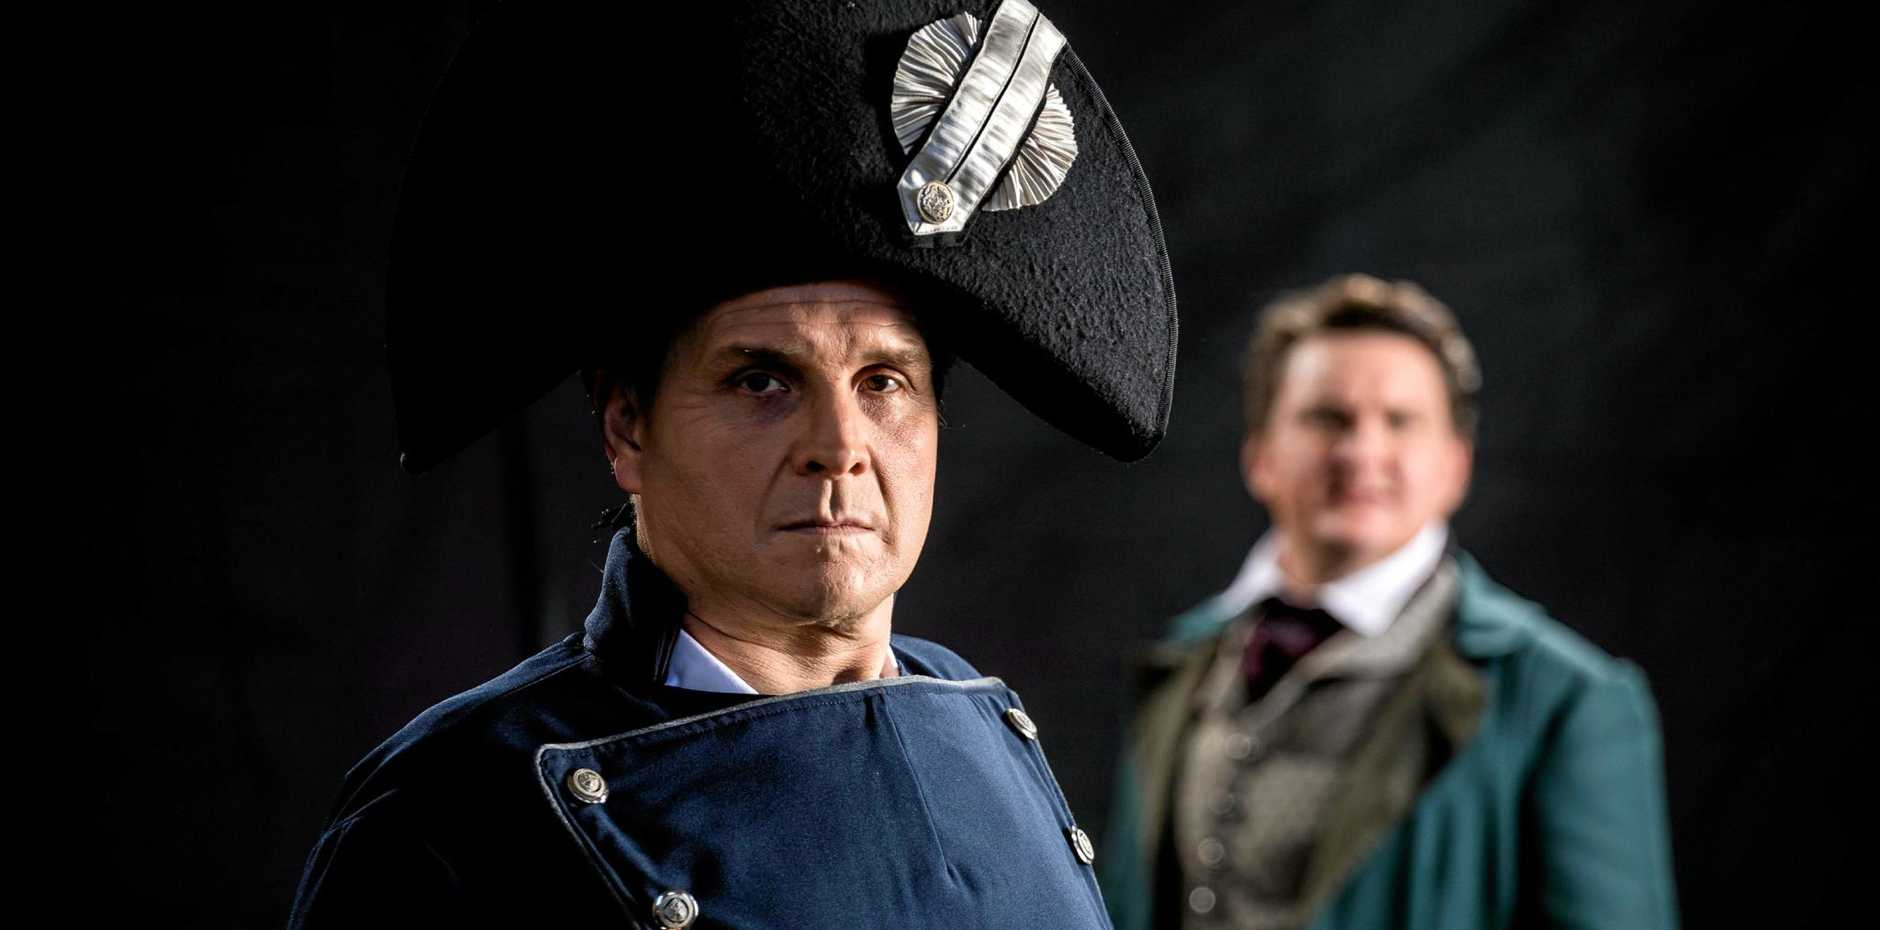 BOLD MOVE: Les Miserables stars Robert Shearer as Jean Valijean and Lionel Theunissen as Javert.